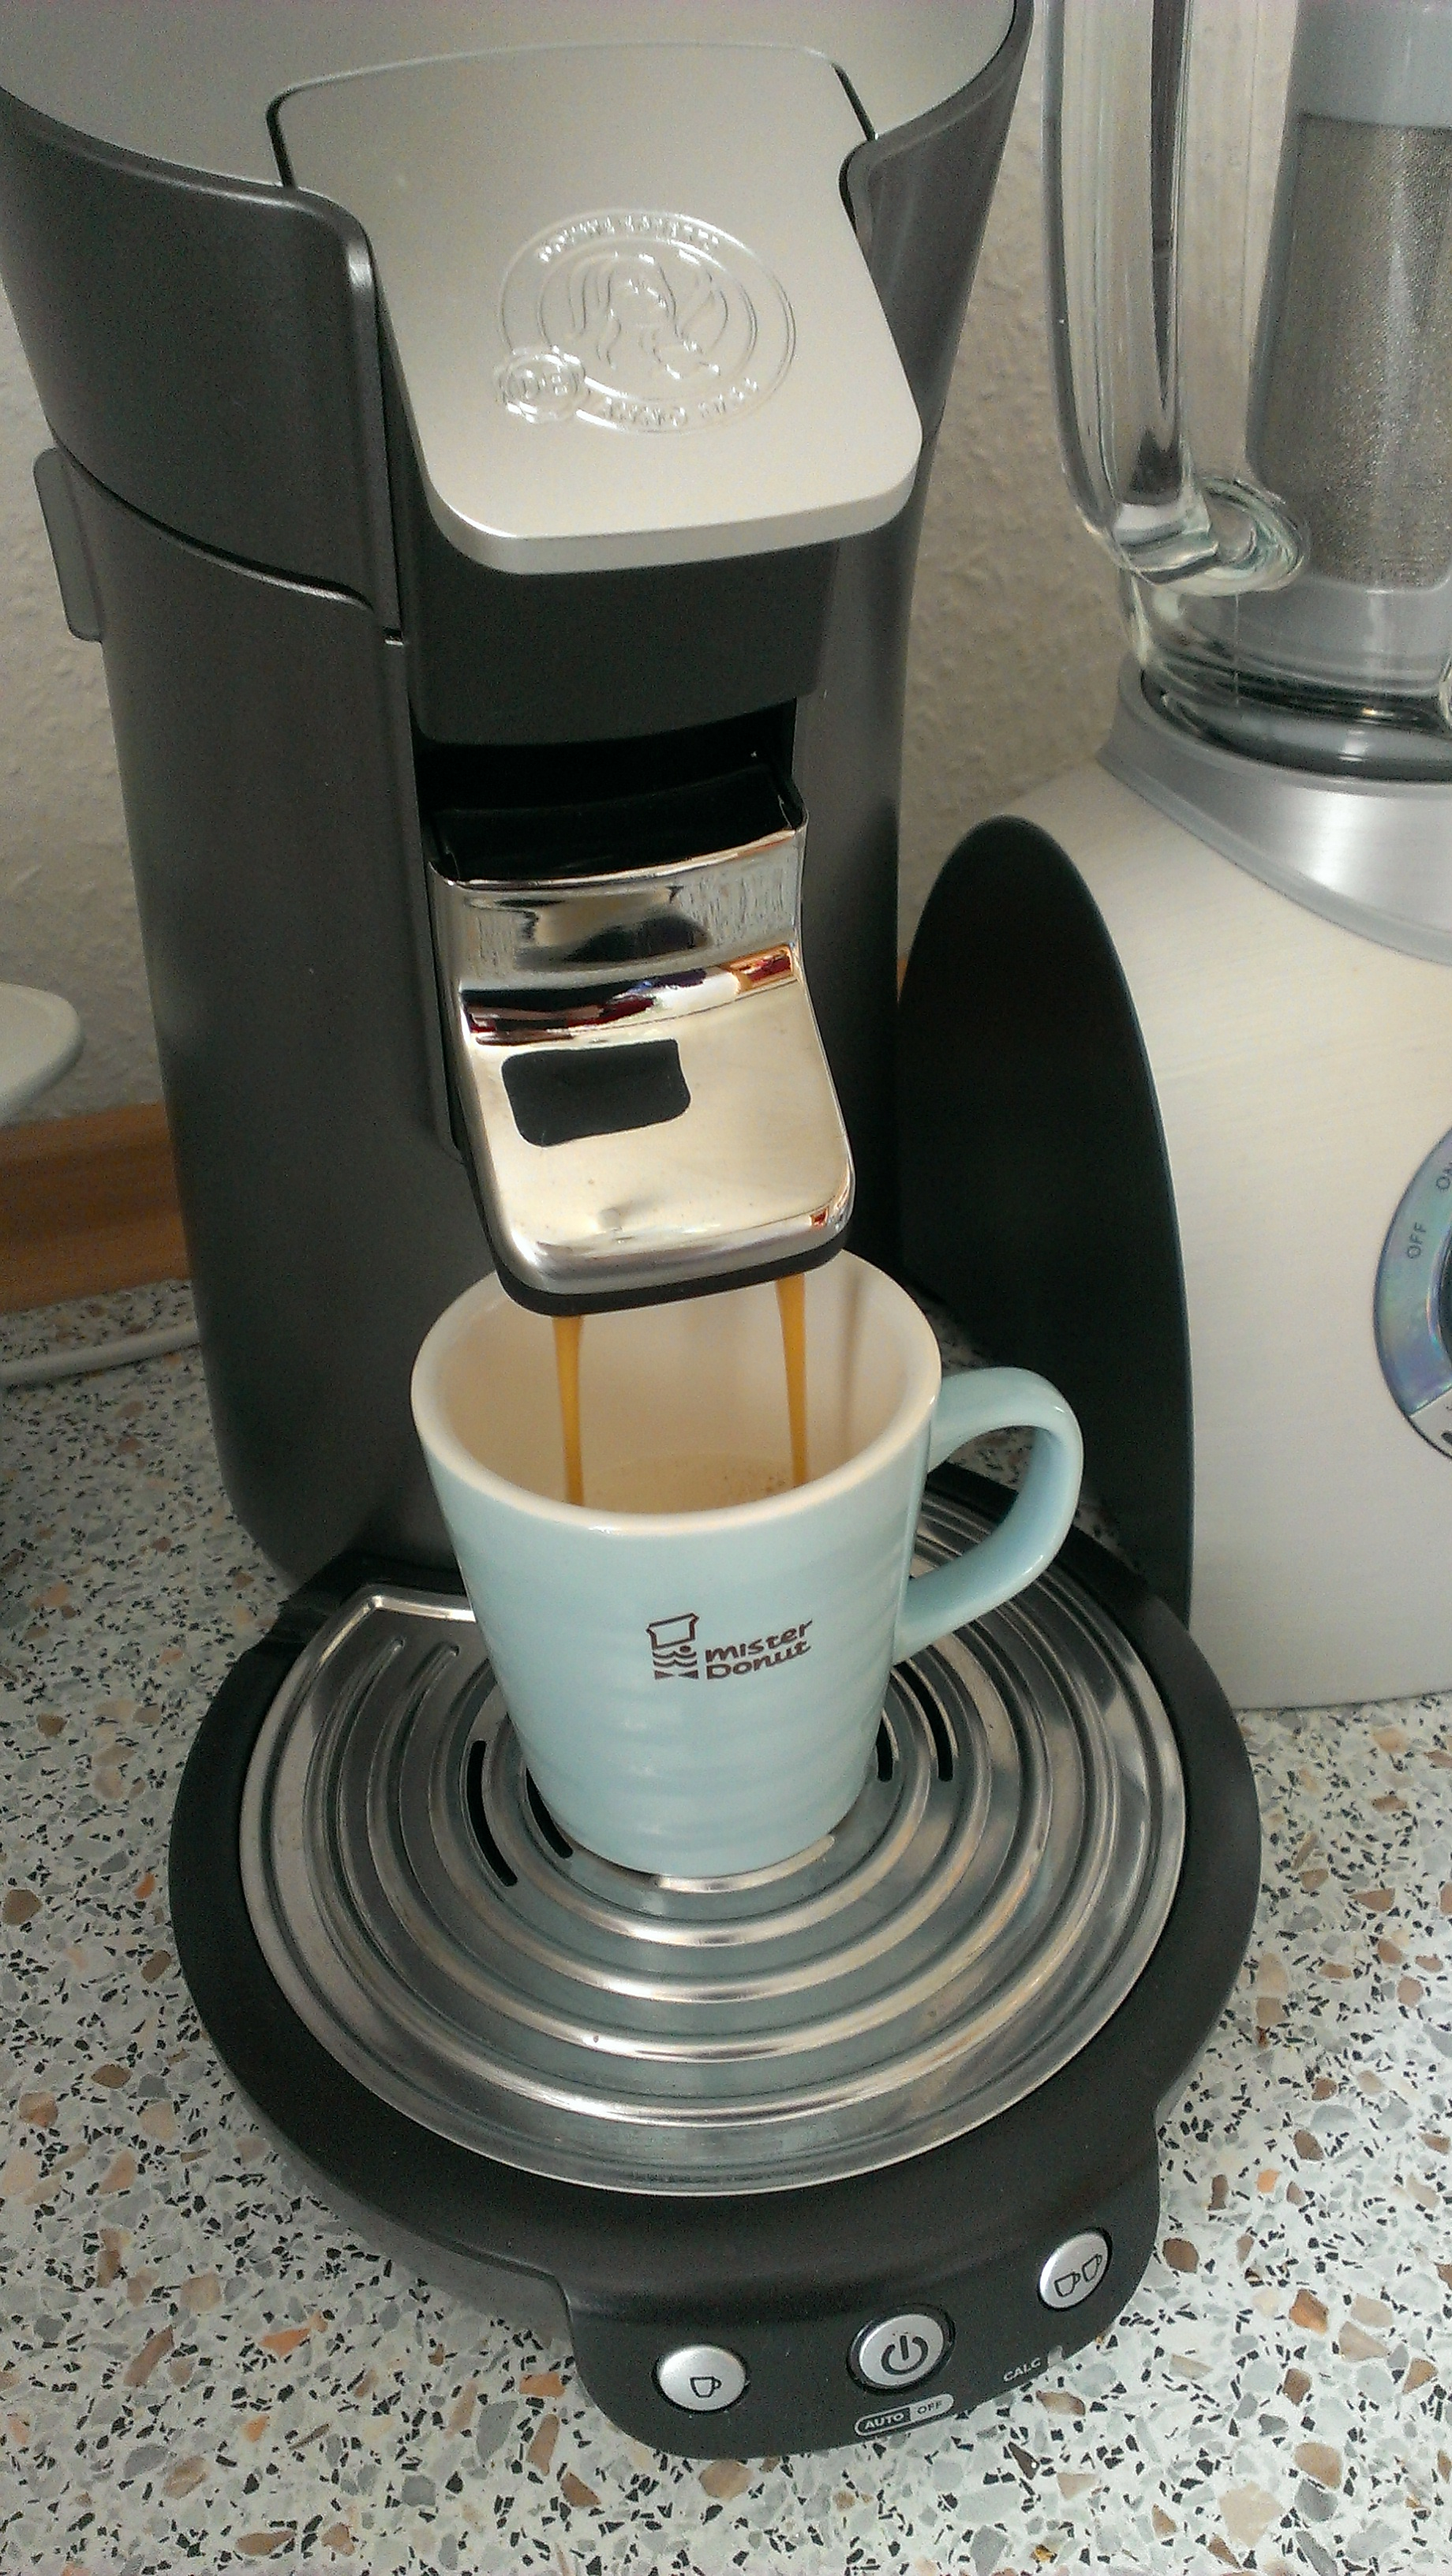 Kaffeemaschine Für Ins Büro Blogs Fortysevenplaces Searching Finding Traveling